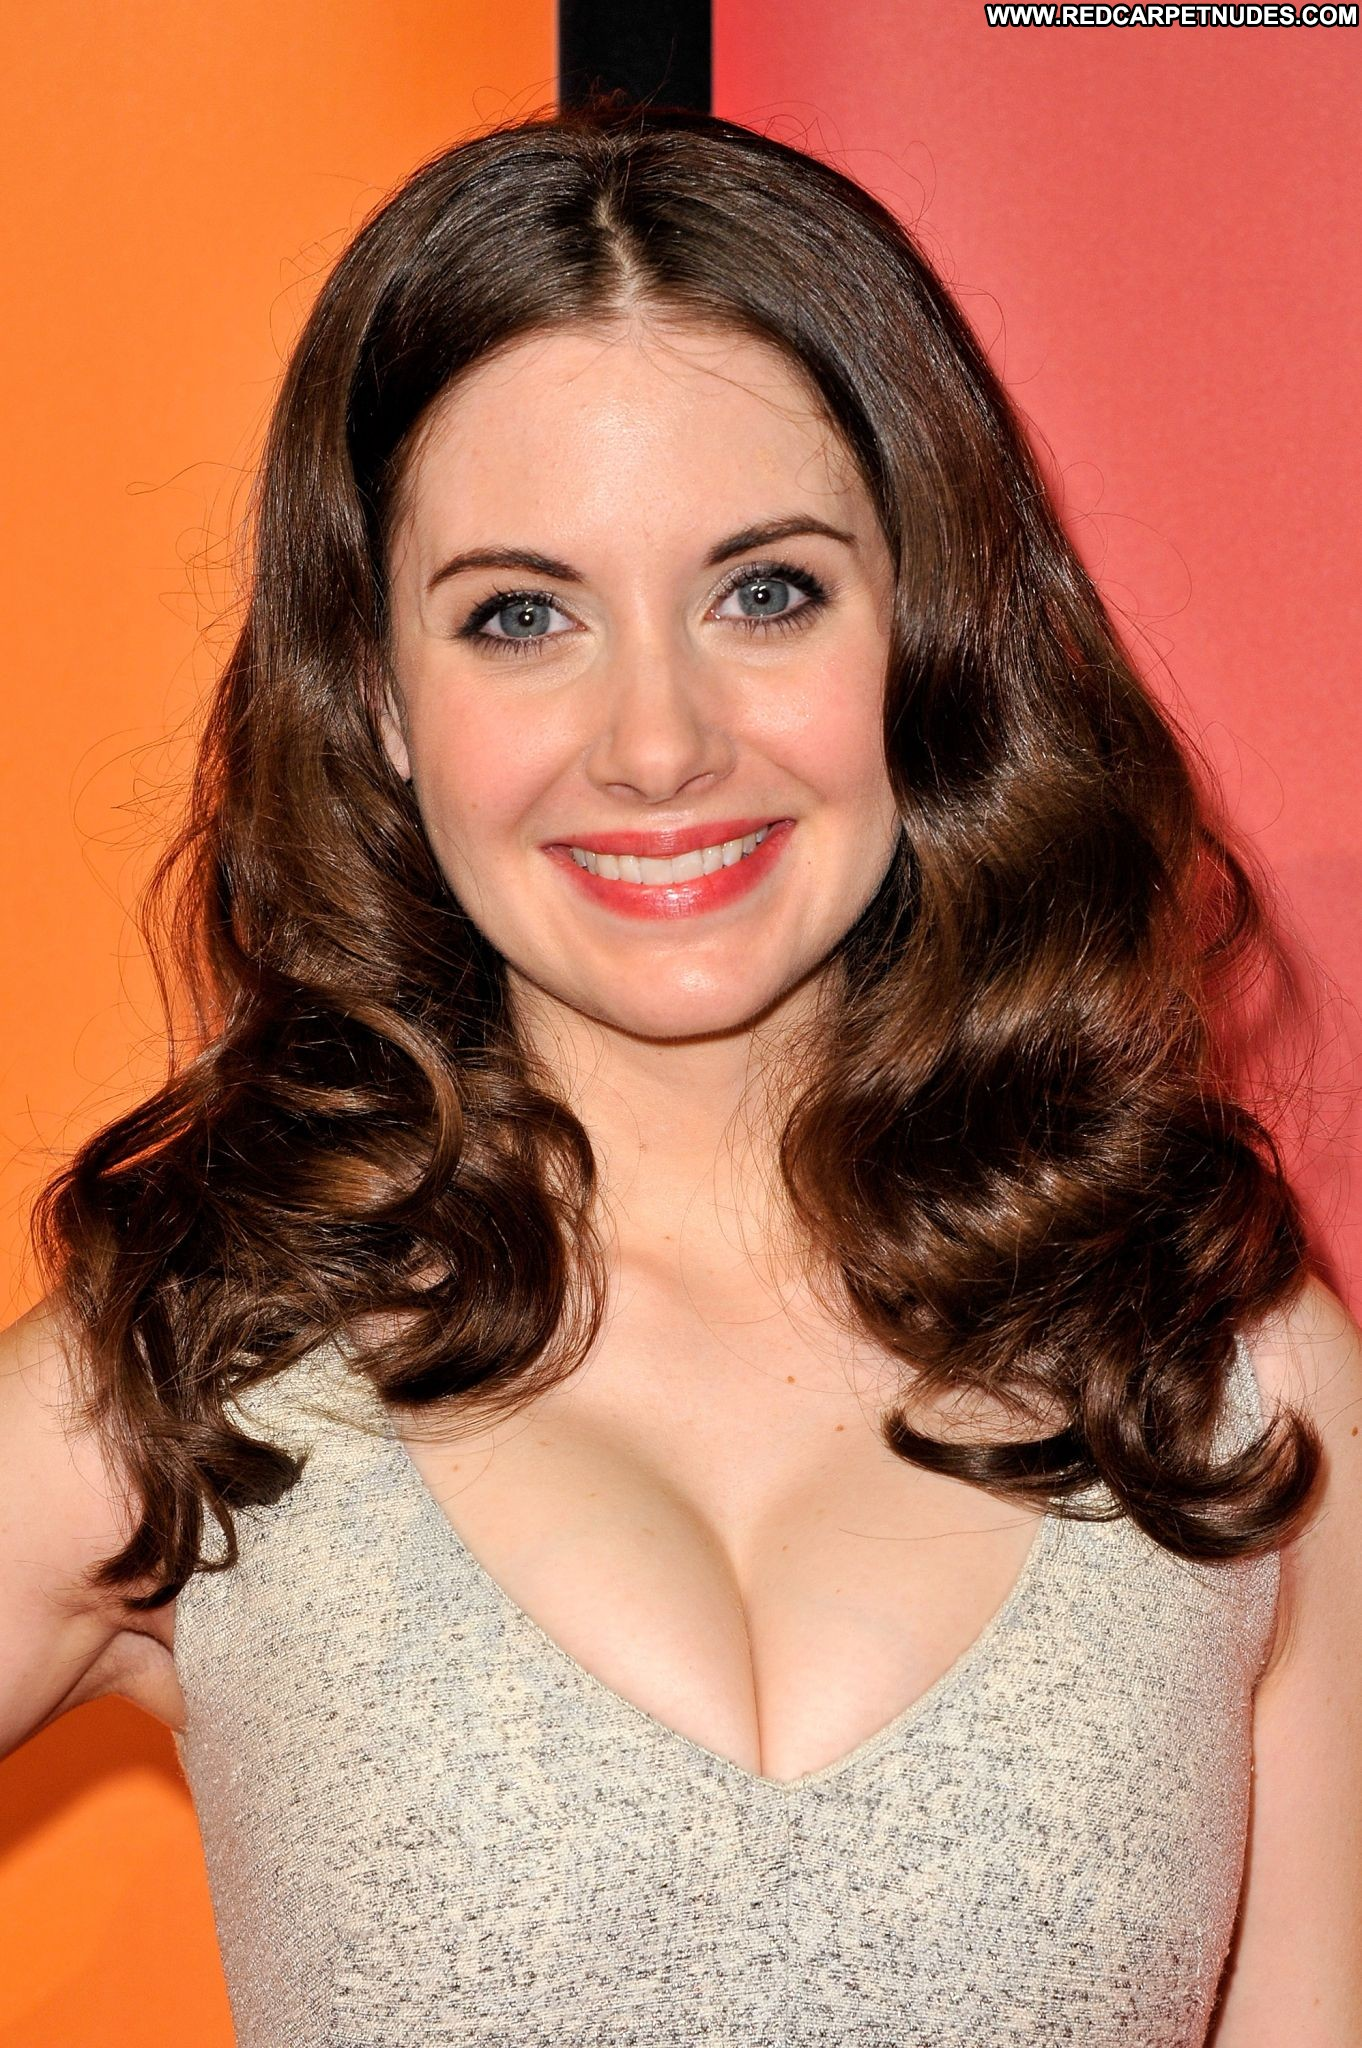 Alison Brie Nude Leaked and Hot Photos - Nude Celebs & Sex